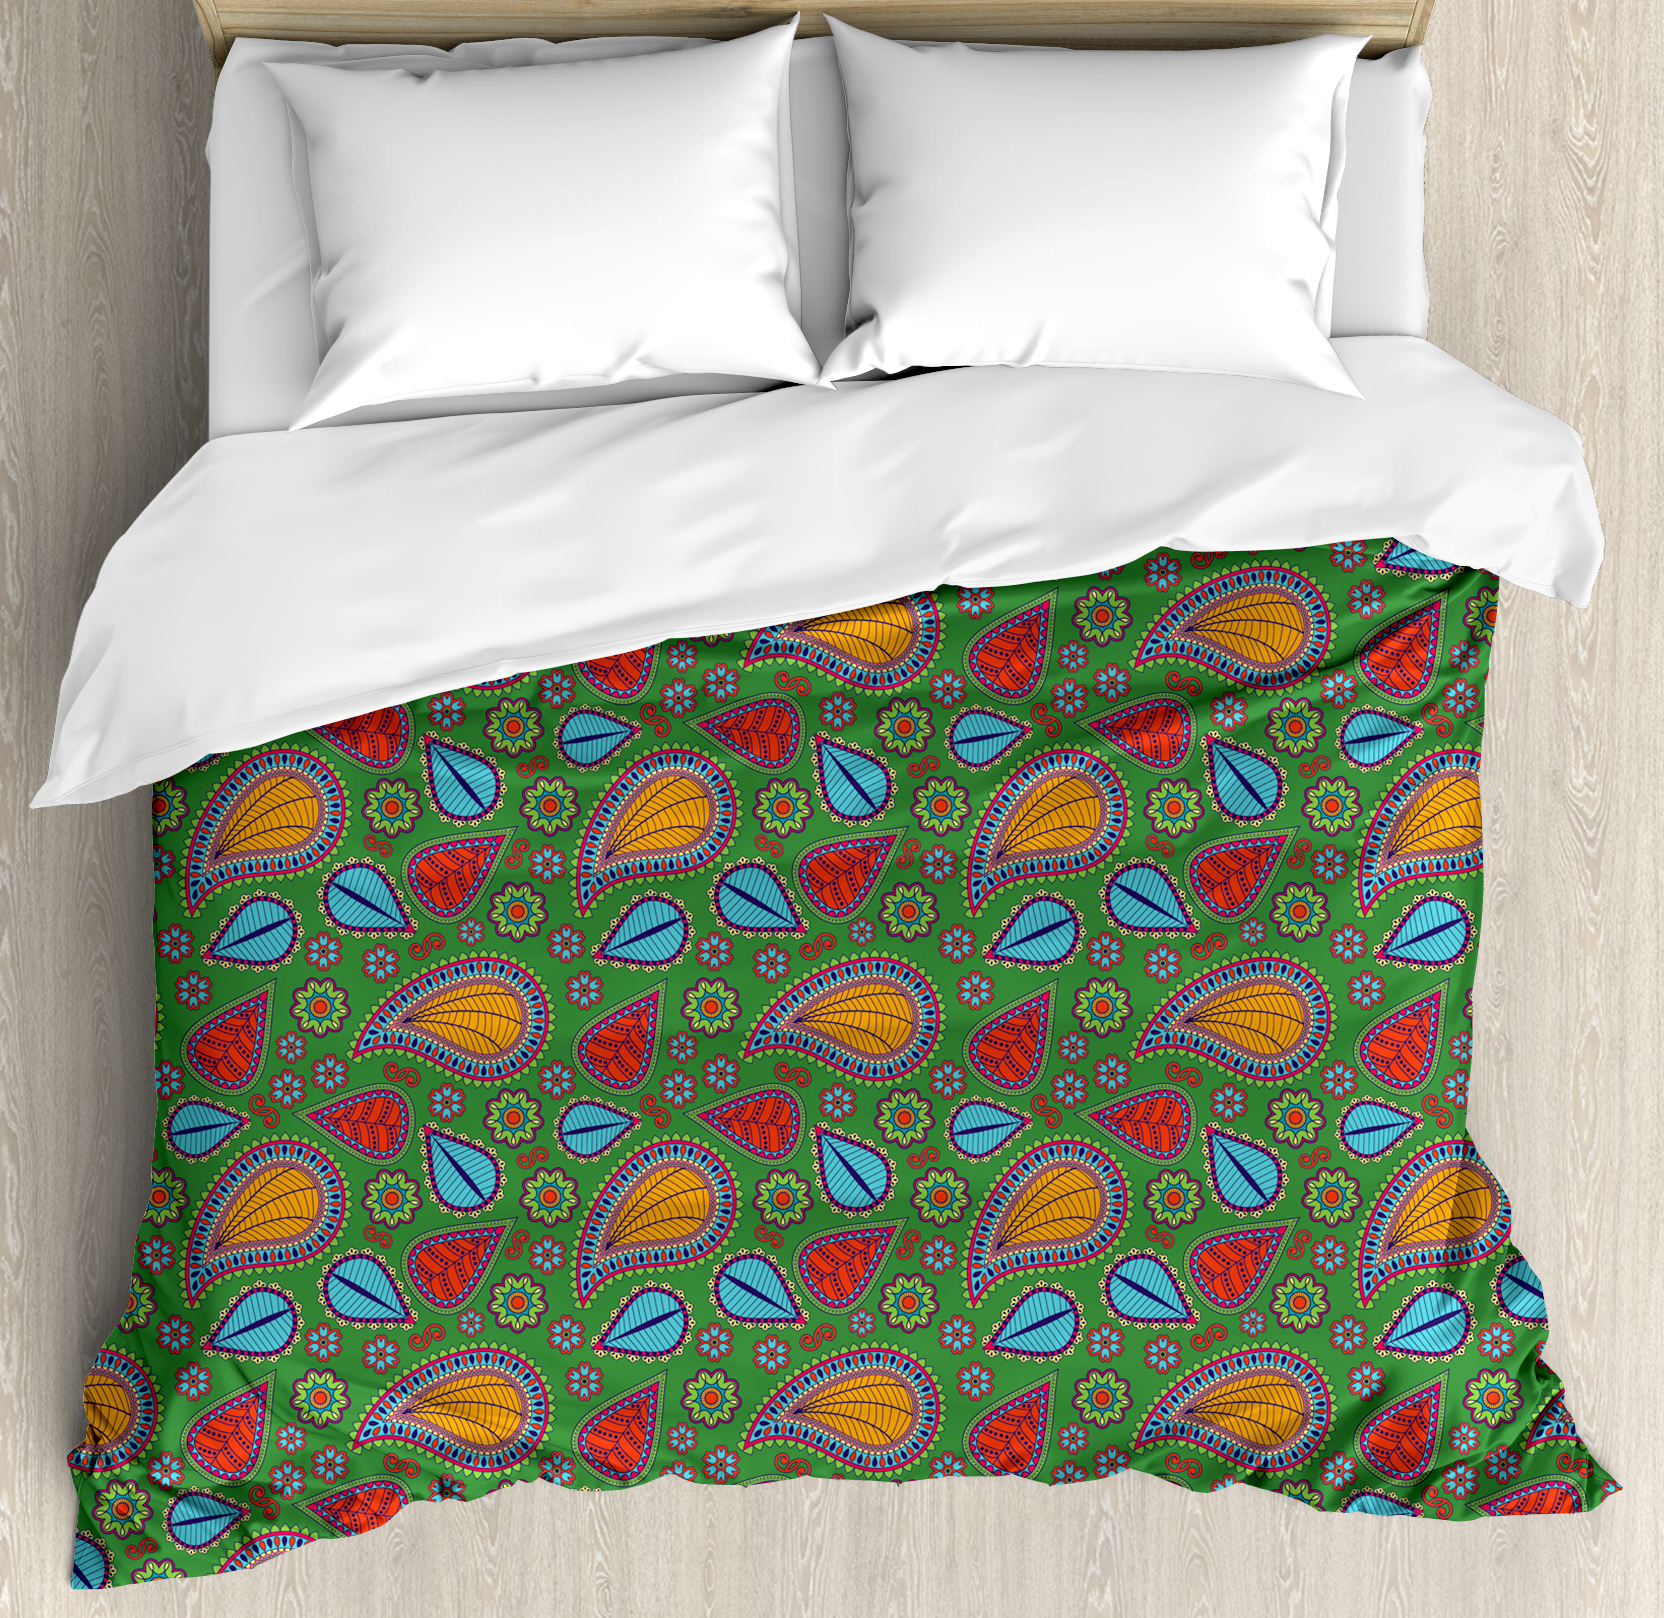 Indian King Size Duvet Cover Set, Ethnic Image with Swirls Floral Details Paisley Decor Fern Green Backdrop, Decorative 3 Piece Bedding Set with 2 Pillow Shams, Orange Blue and Red, by Ambesonne